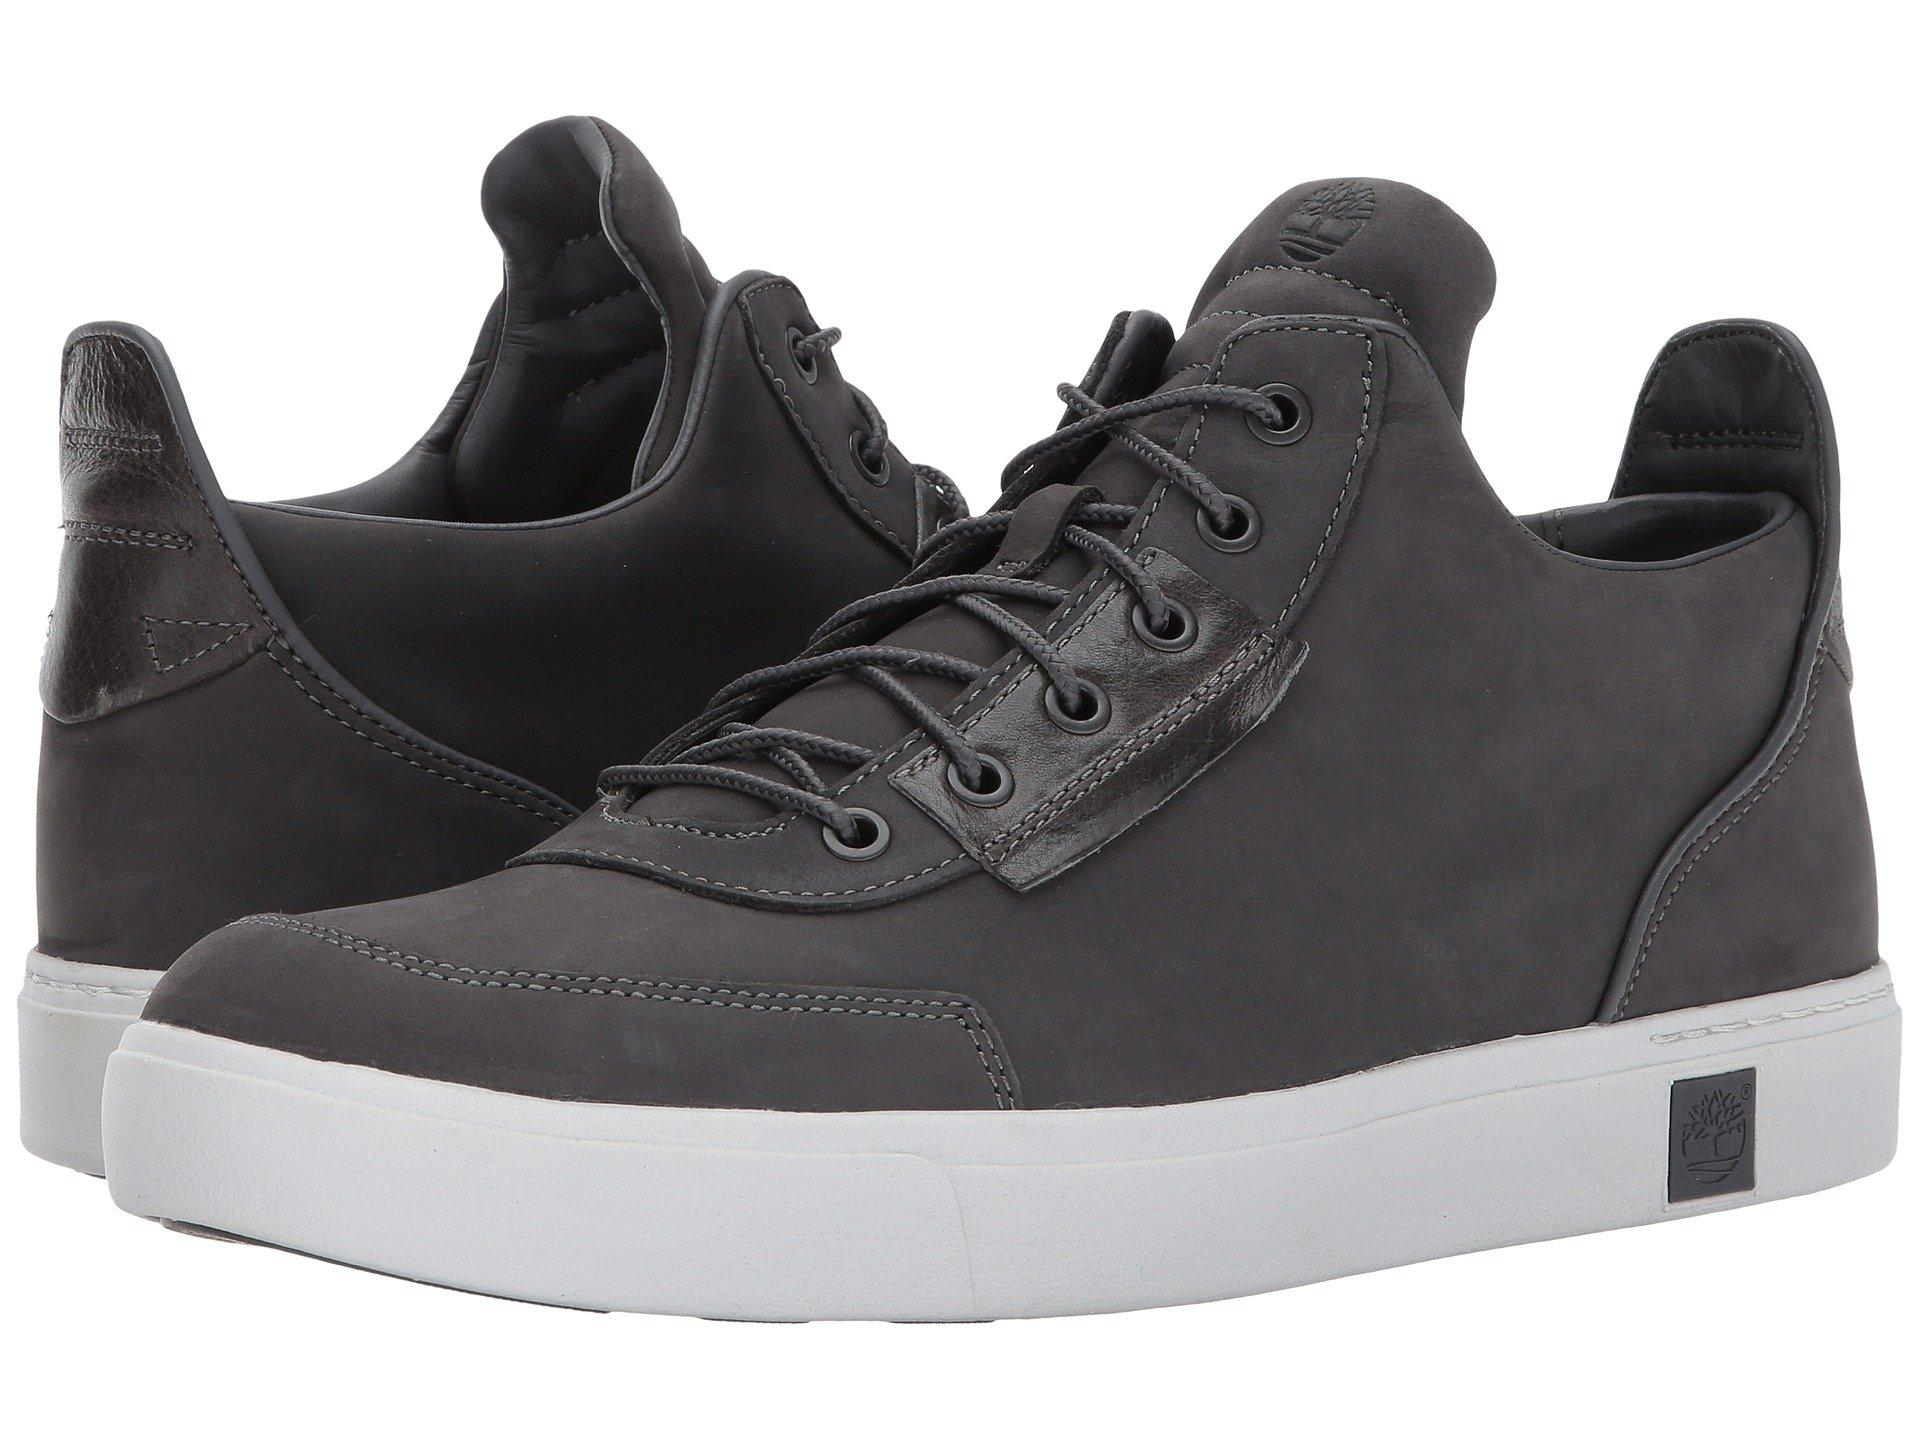 Amherst High Top Chukka in Dark Grey Nubuck